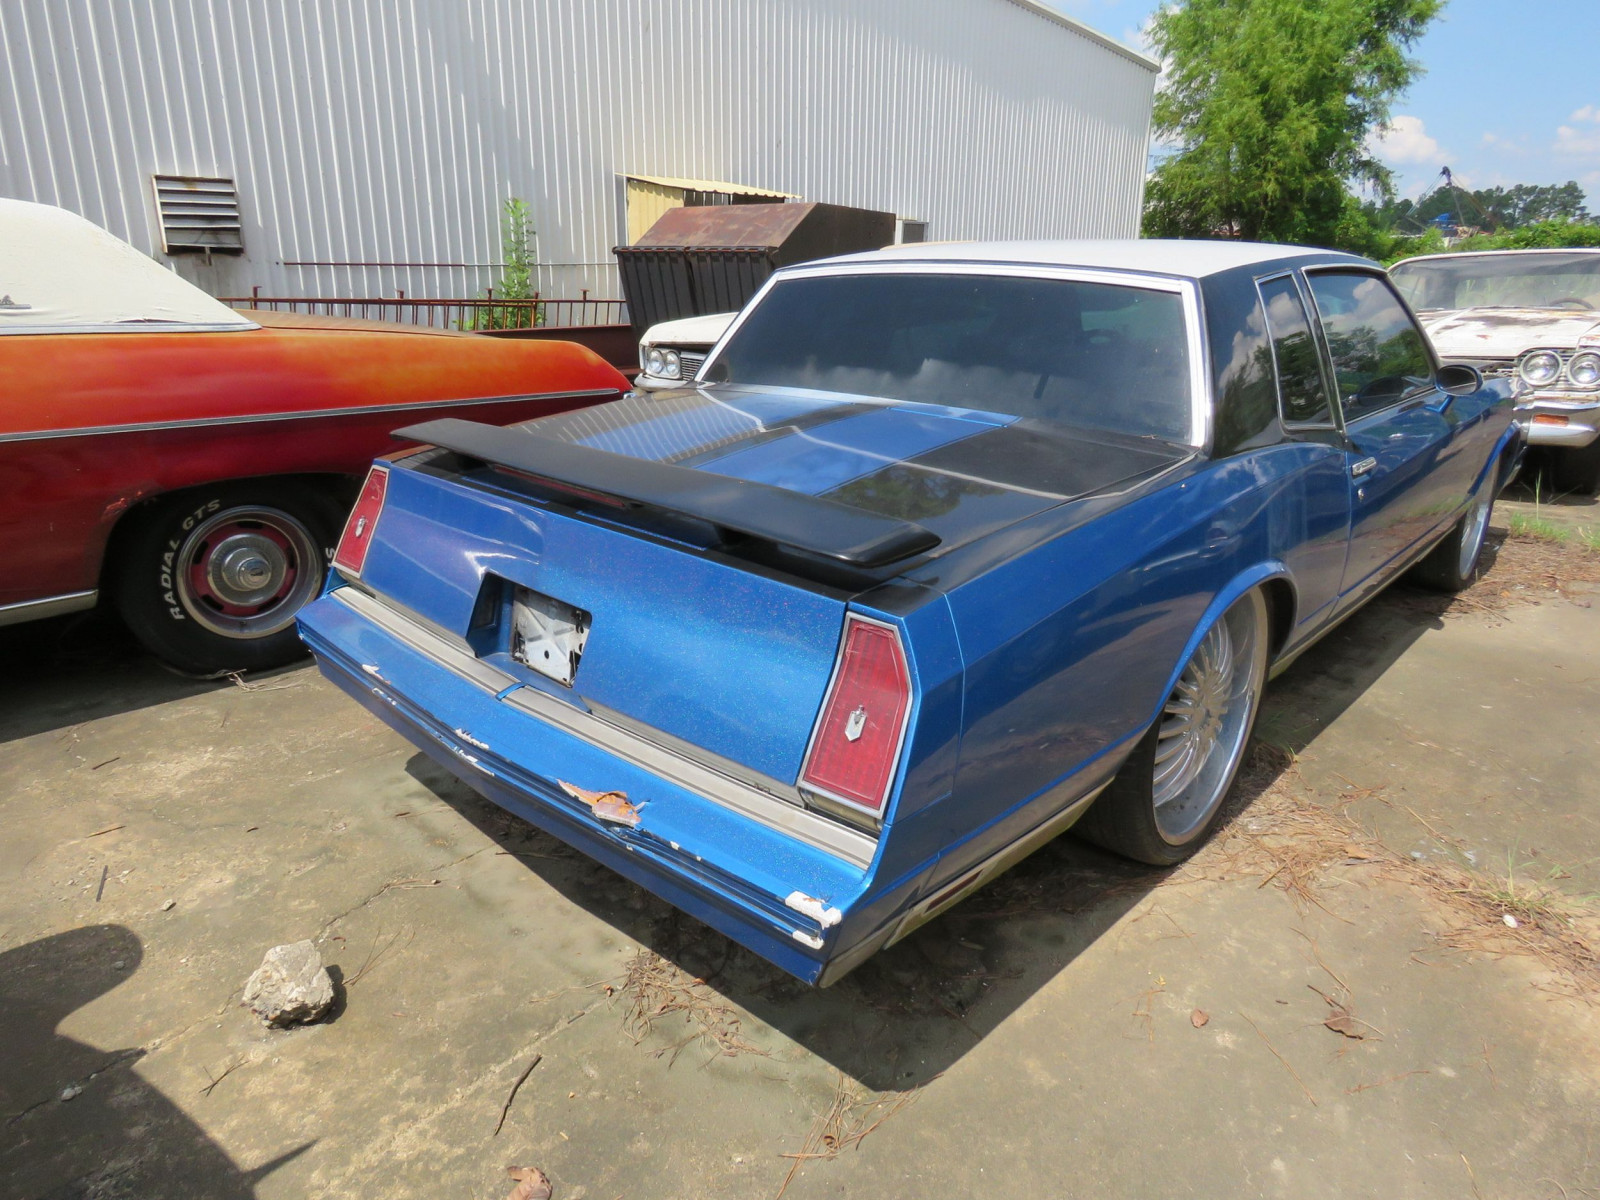 1984 Chevrolet Monte Carlo Custom Project - Image 4